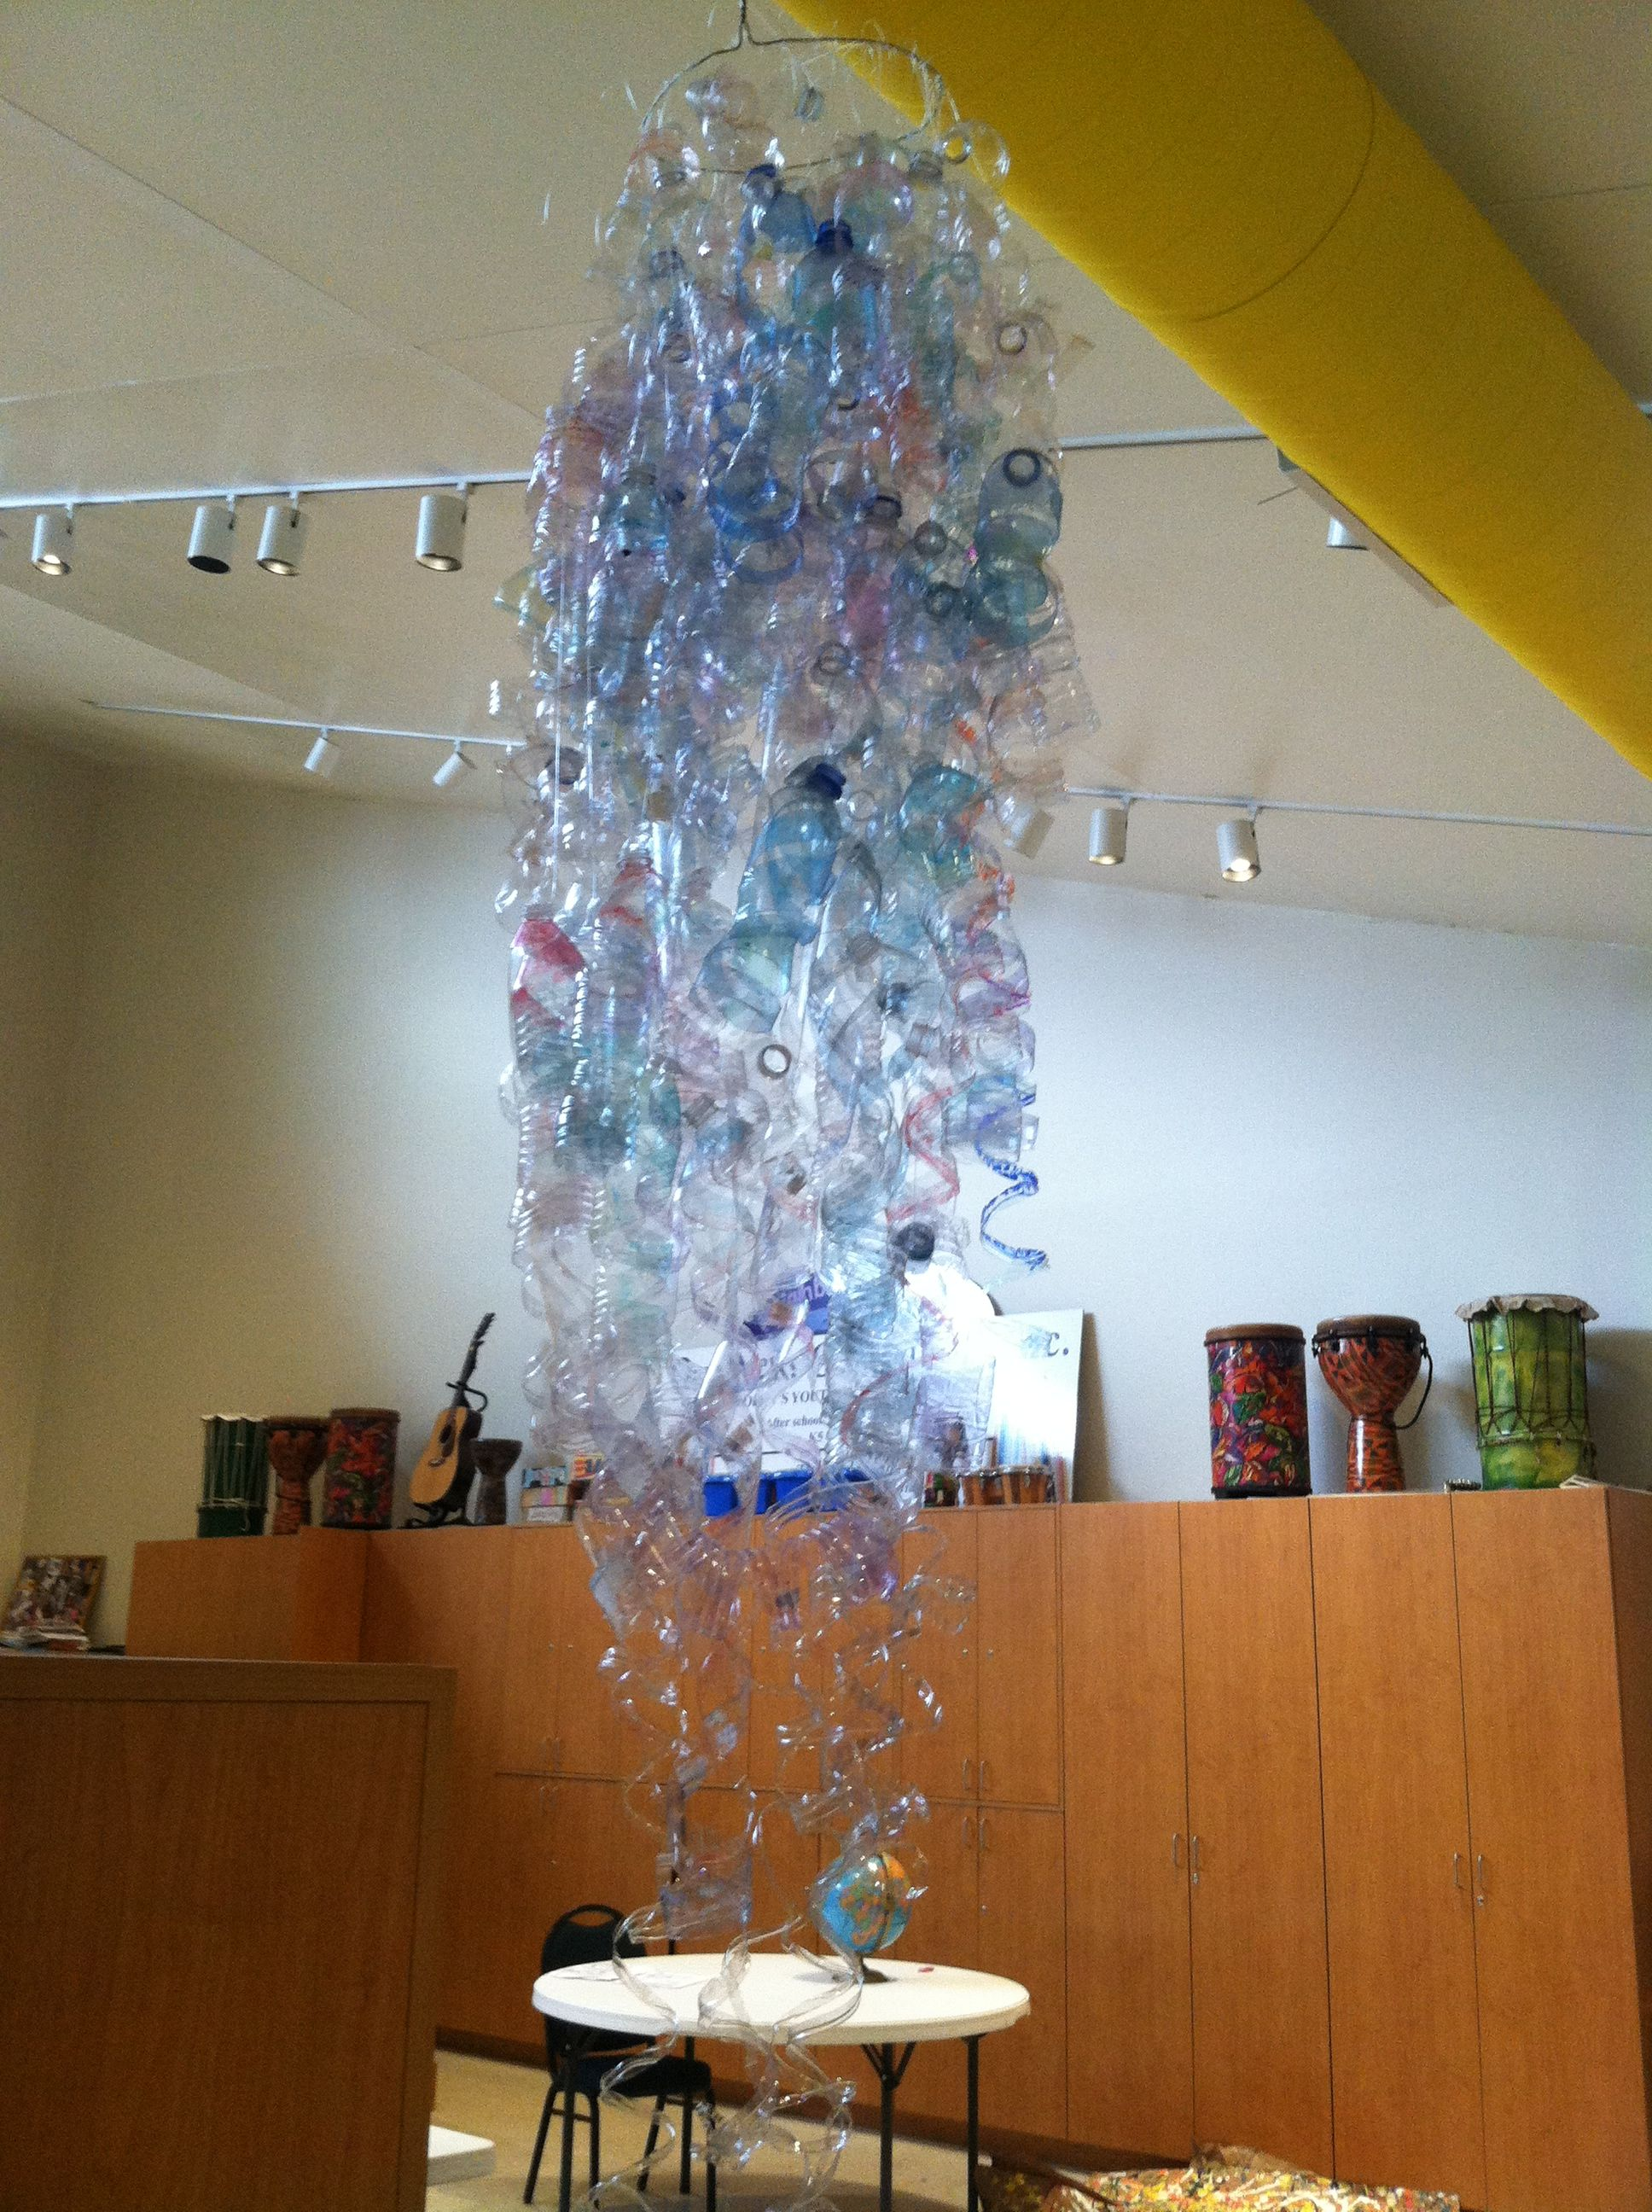 North America: Chihuly Sculpture - Collaborative art featuring individually sculpted bottles by all 140 students.  http://blog.mam.org/2013/05/17/celebrating-chihuly-in-wisconsin/